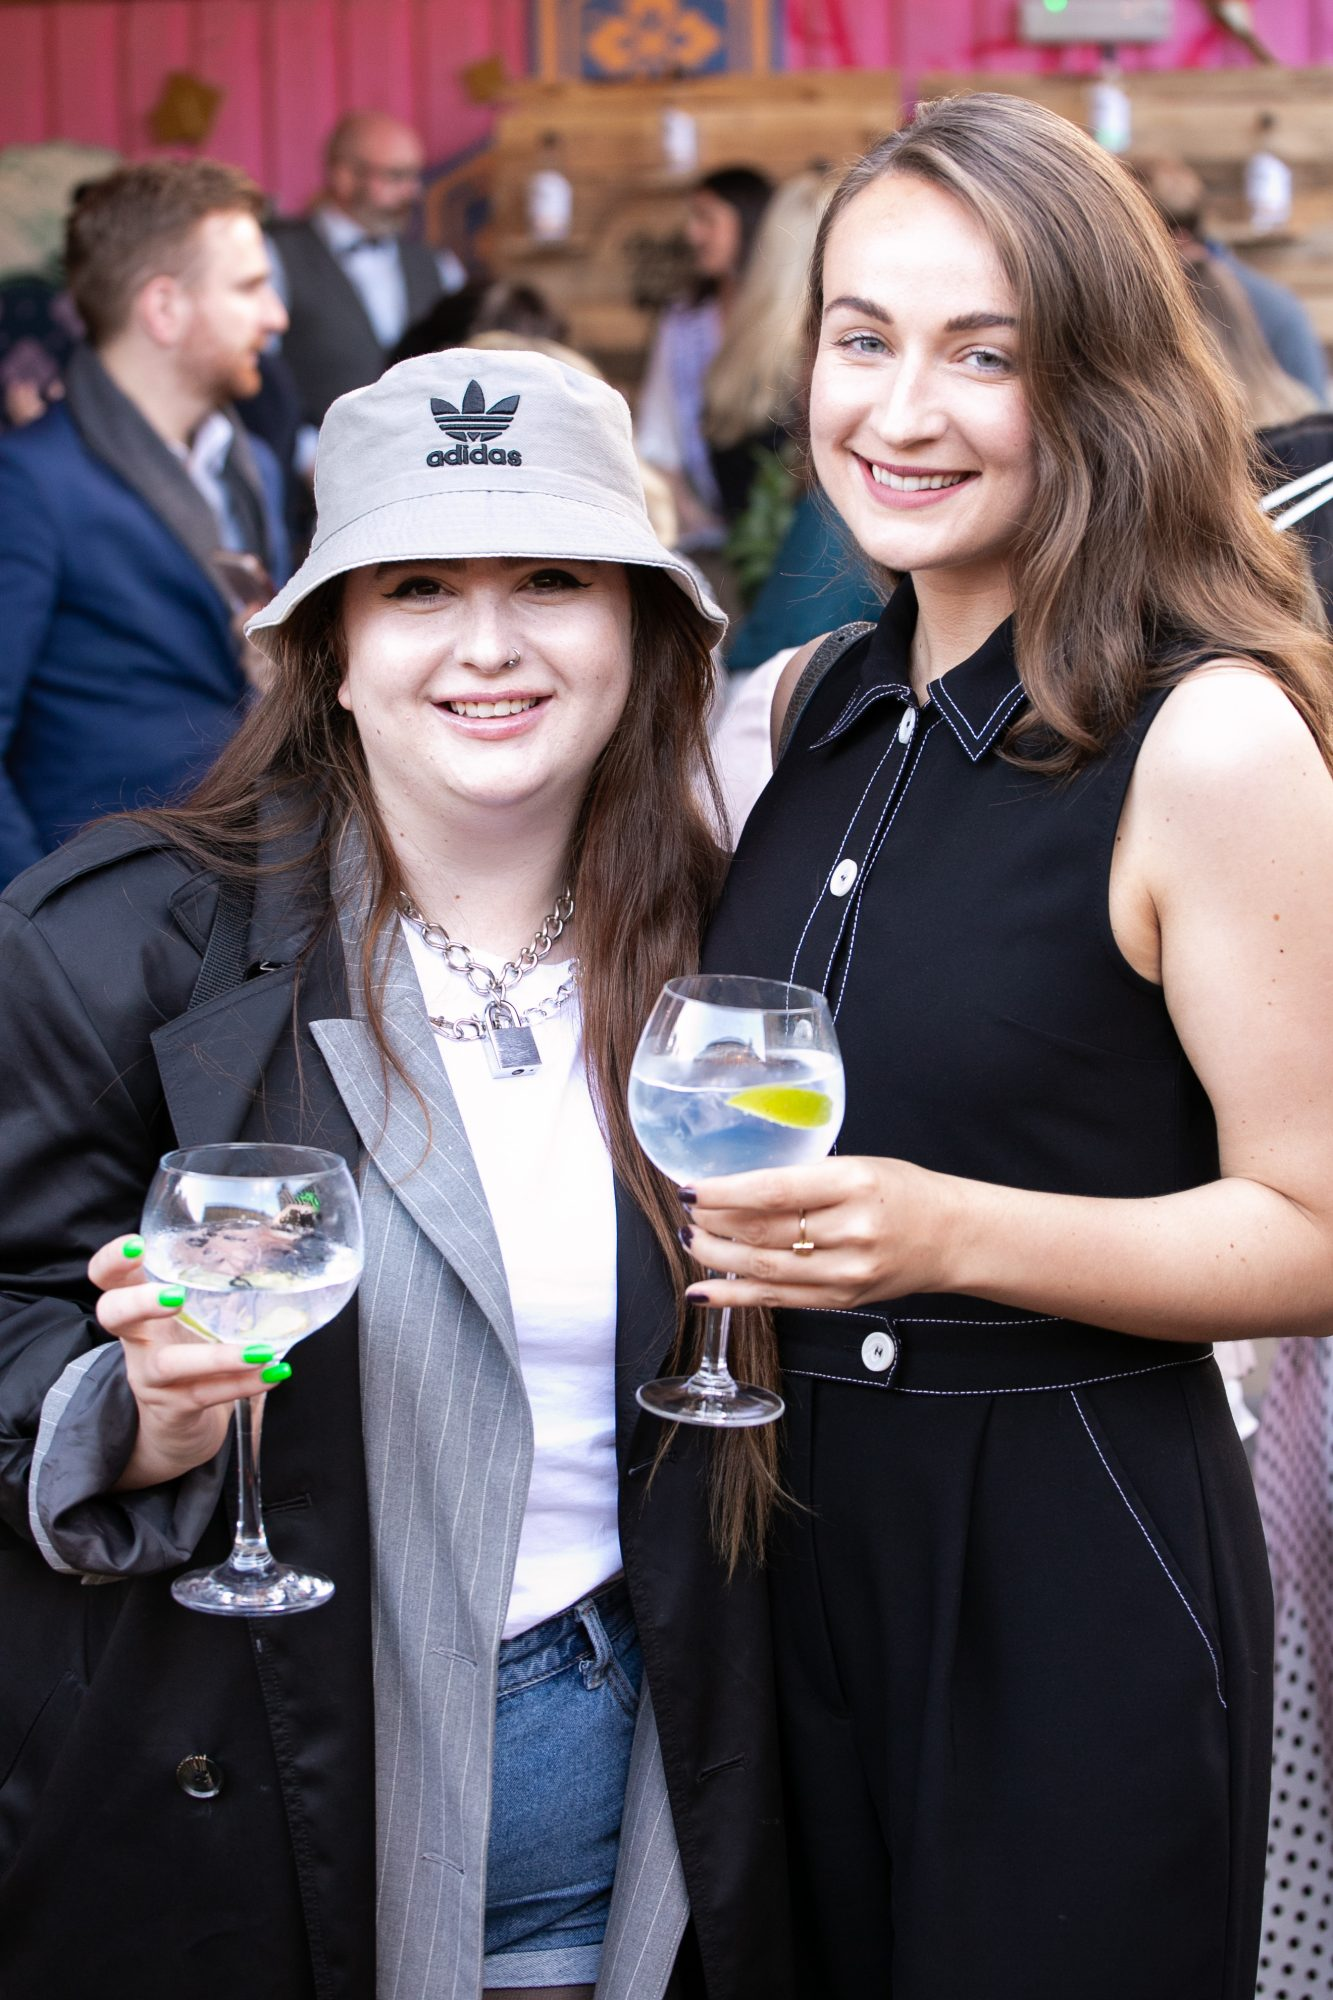 Sarah Magliocco and Ashley McDonnell at the SuperValu Gin Garden held at Opium Rooftop Garden, Dublin.